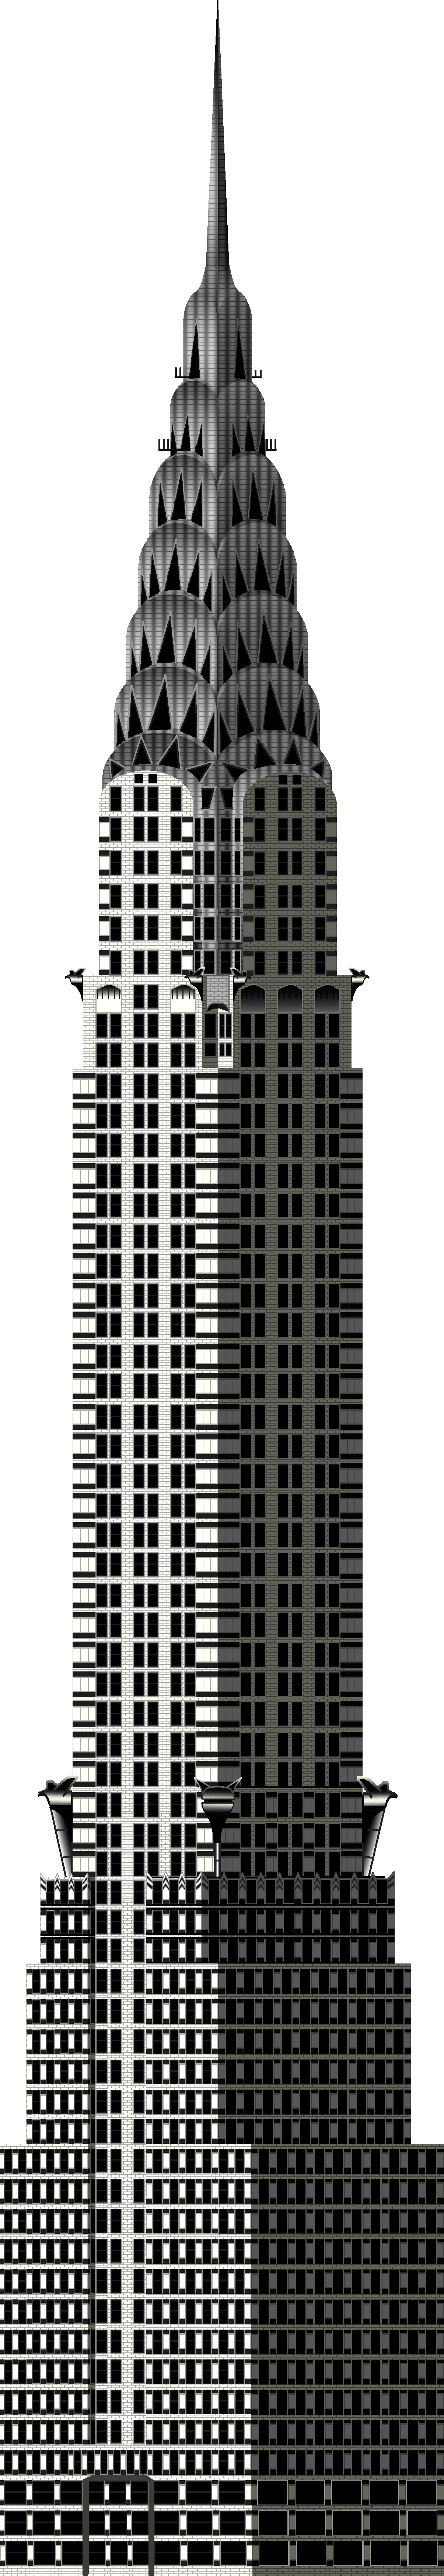 Newchryslerbuilding free images at vector for 2d building drawing